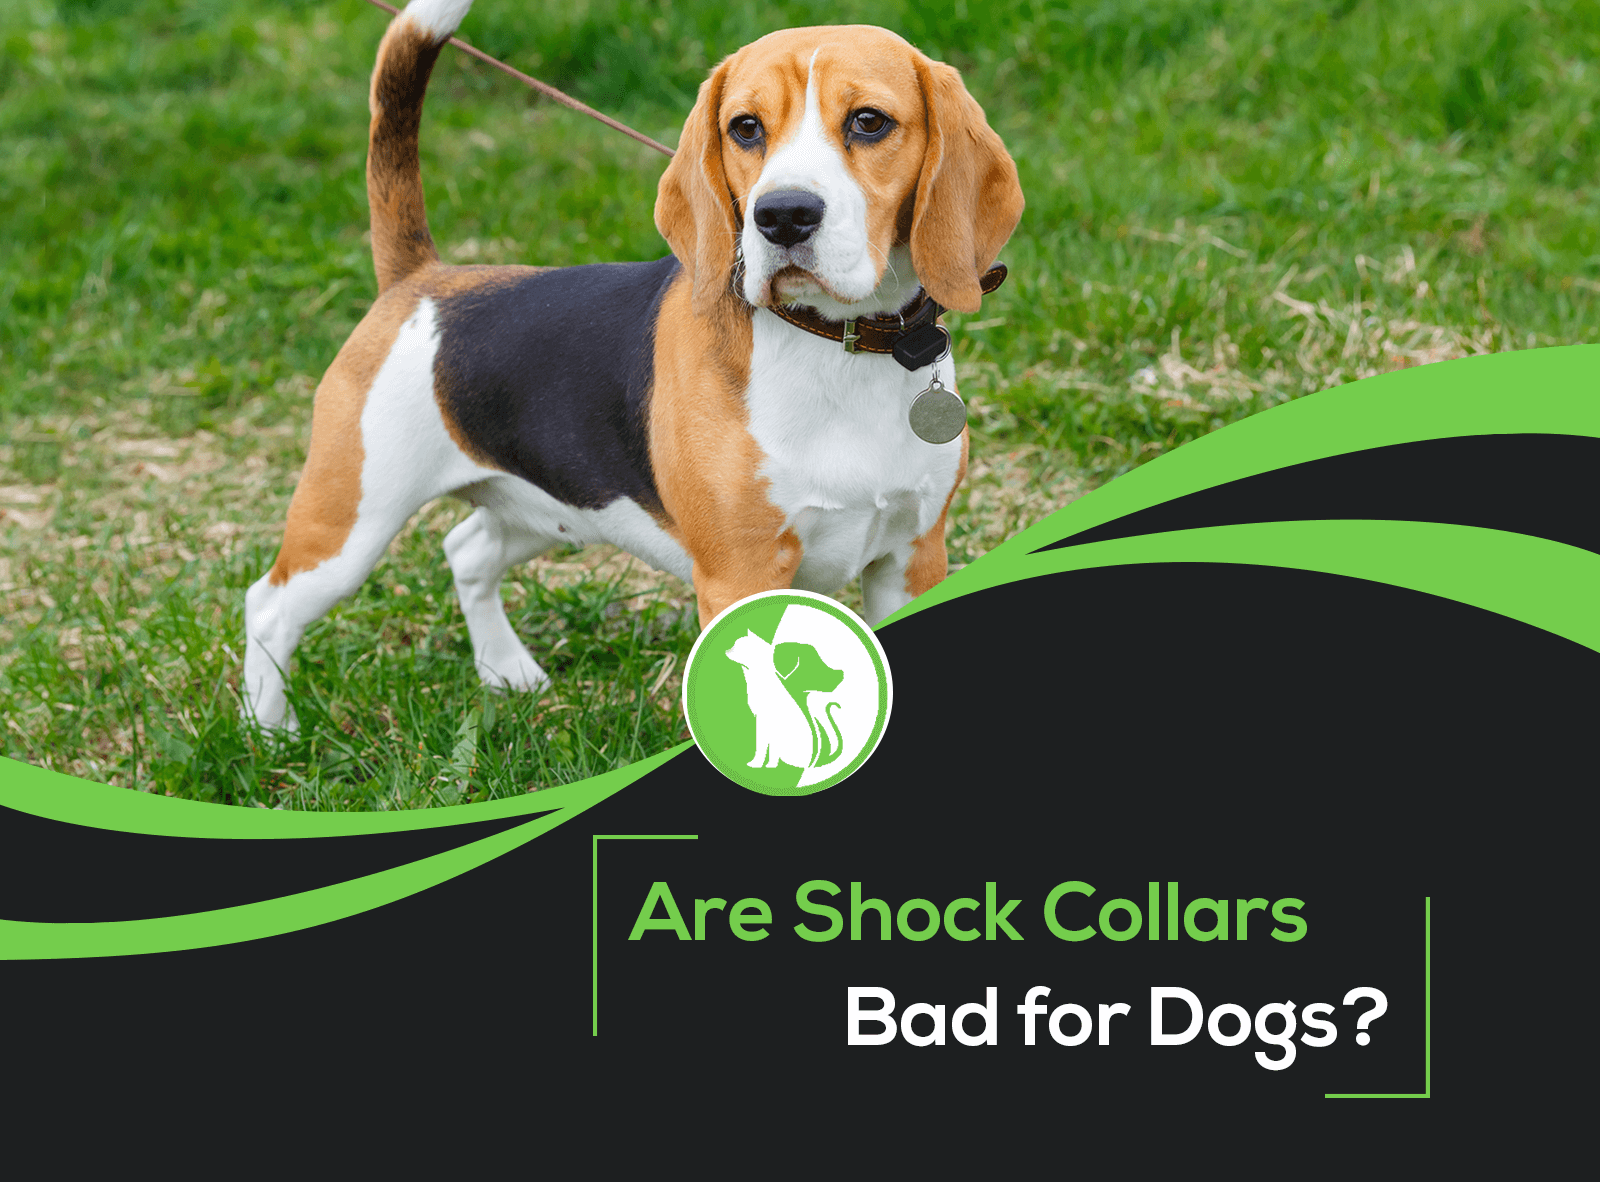 Are Shock Collars Bad for Dogs?